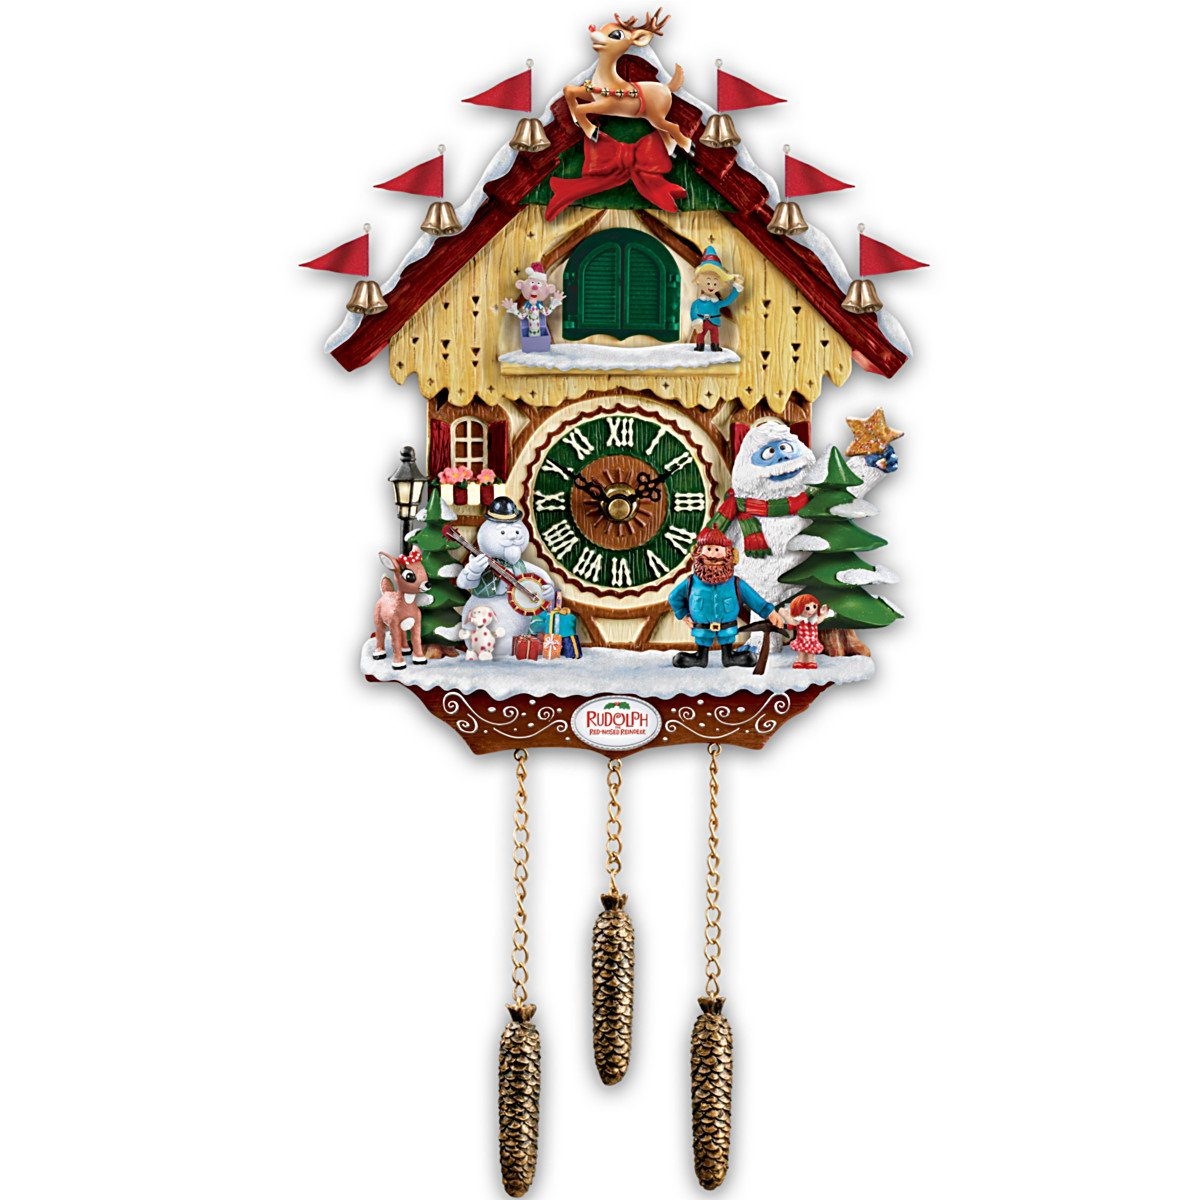 Cuckoo Clock: Rudolph The Red-Nosed Reindeer 50th Anniversary Cuckoo Clock by The Bradford Exchange 01-15530-001